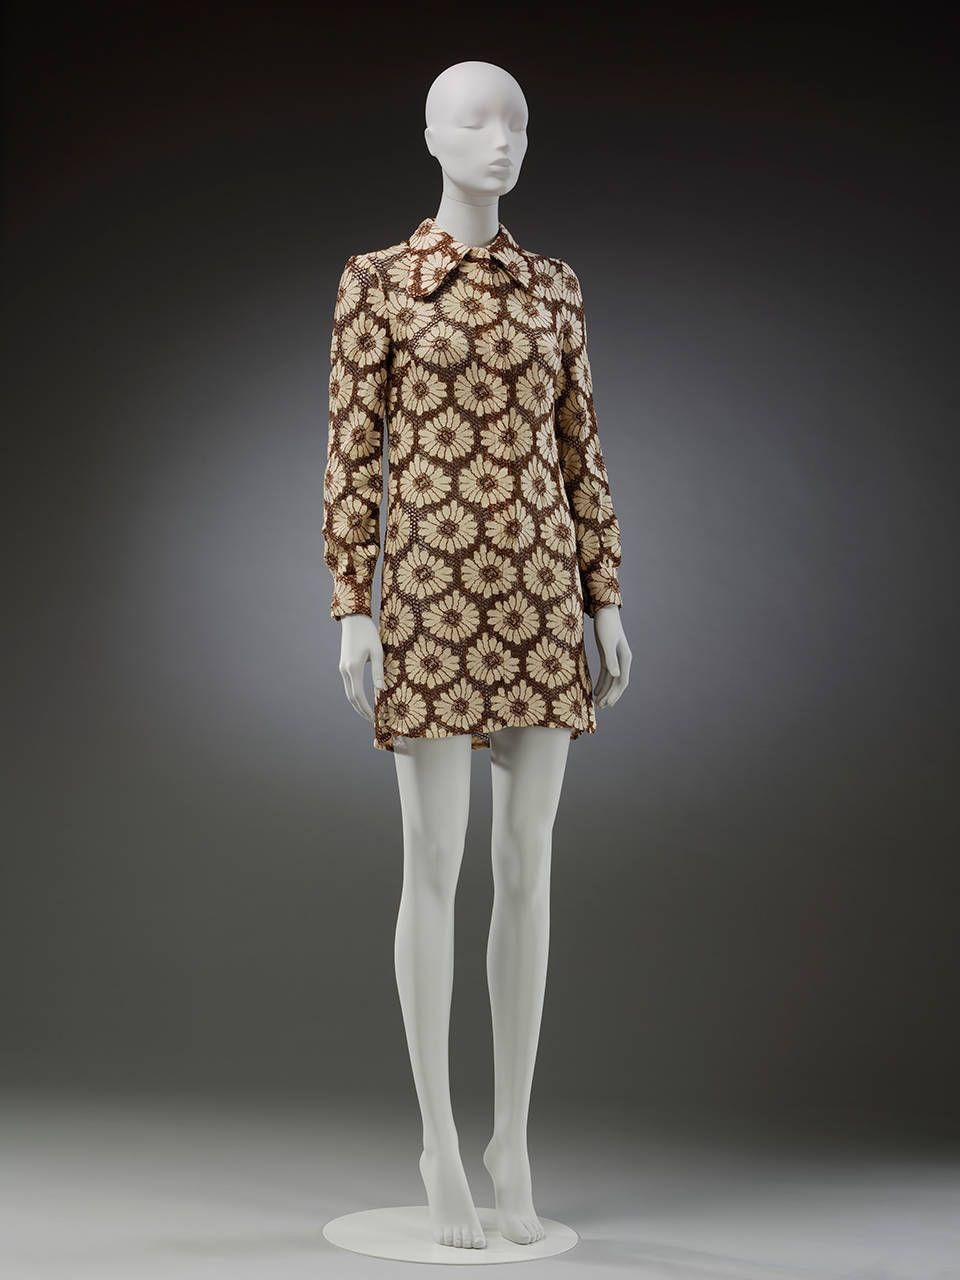 Eclair Dress Mary Quant S Ginger Group 1969 Uk Museum No T 90 2018 C Victoria And Albert Museum Lo Vintage Fashion 1960s 1960s Fashion Vintage Fashion